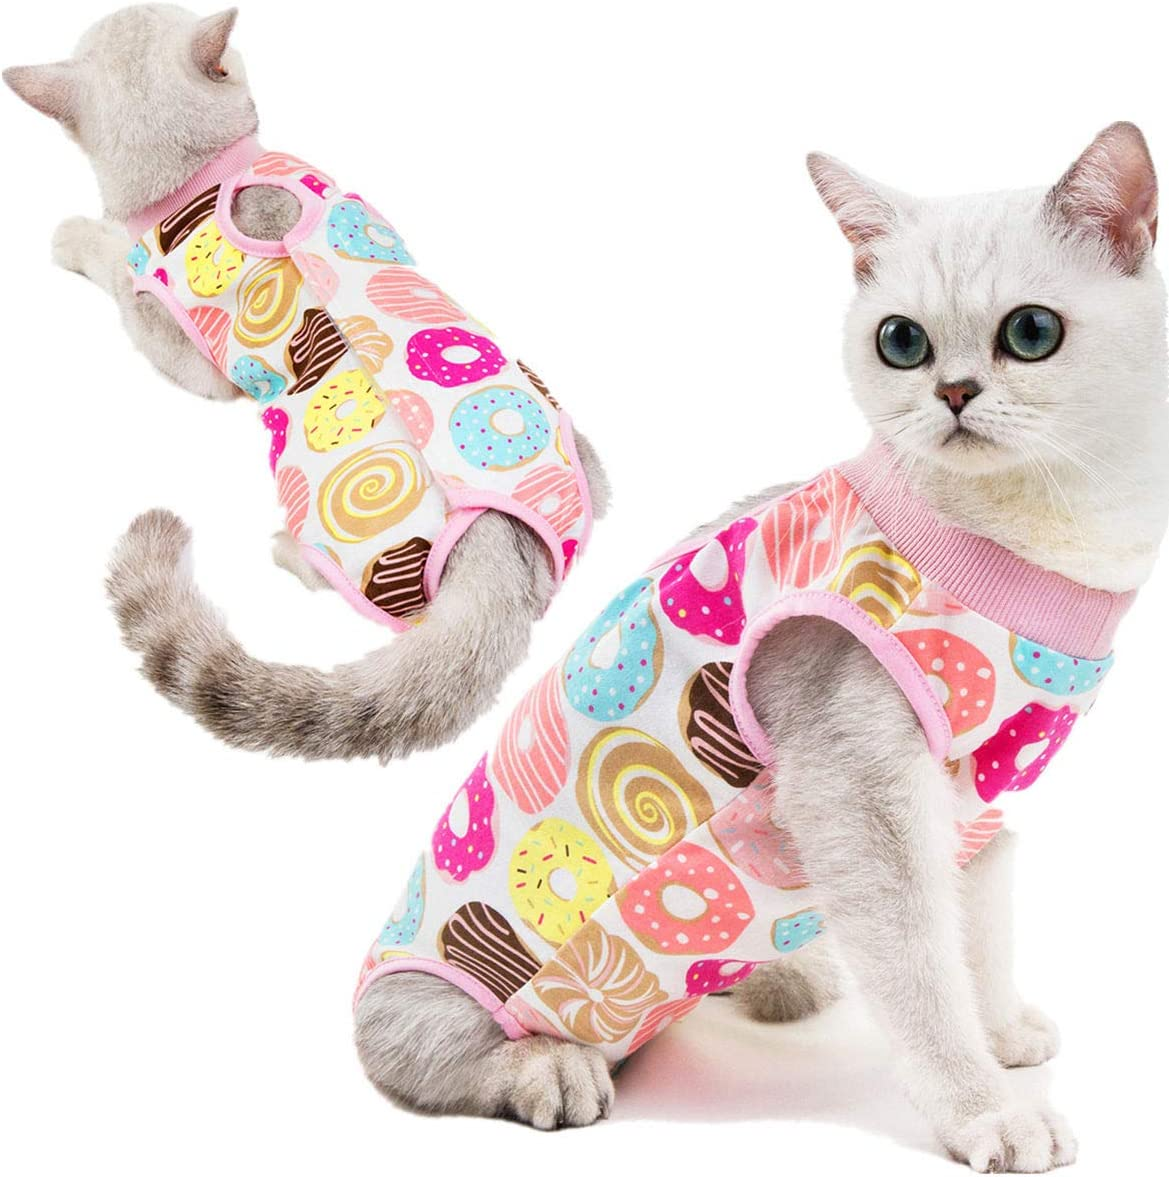 Kismaple Cat Recovery Suit for Abdominal Wounds Surgical Skin Diseases Anti-Licking Cotton Breathable Vest E-Collar Alternative for Cats After Surgery Wear